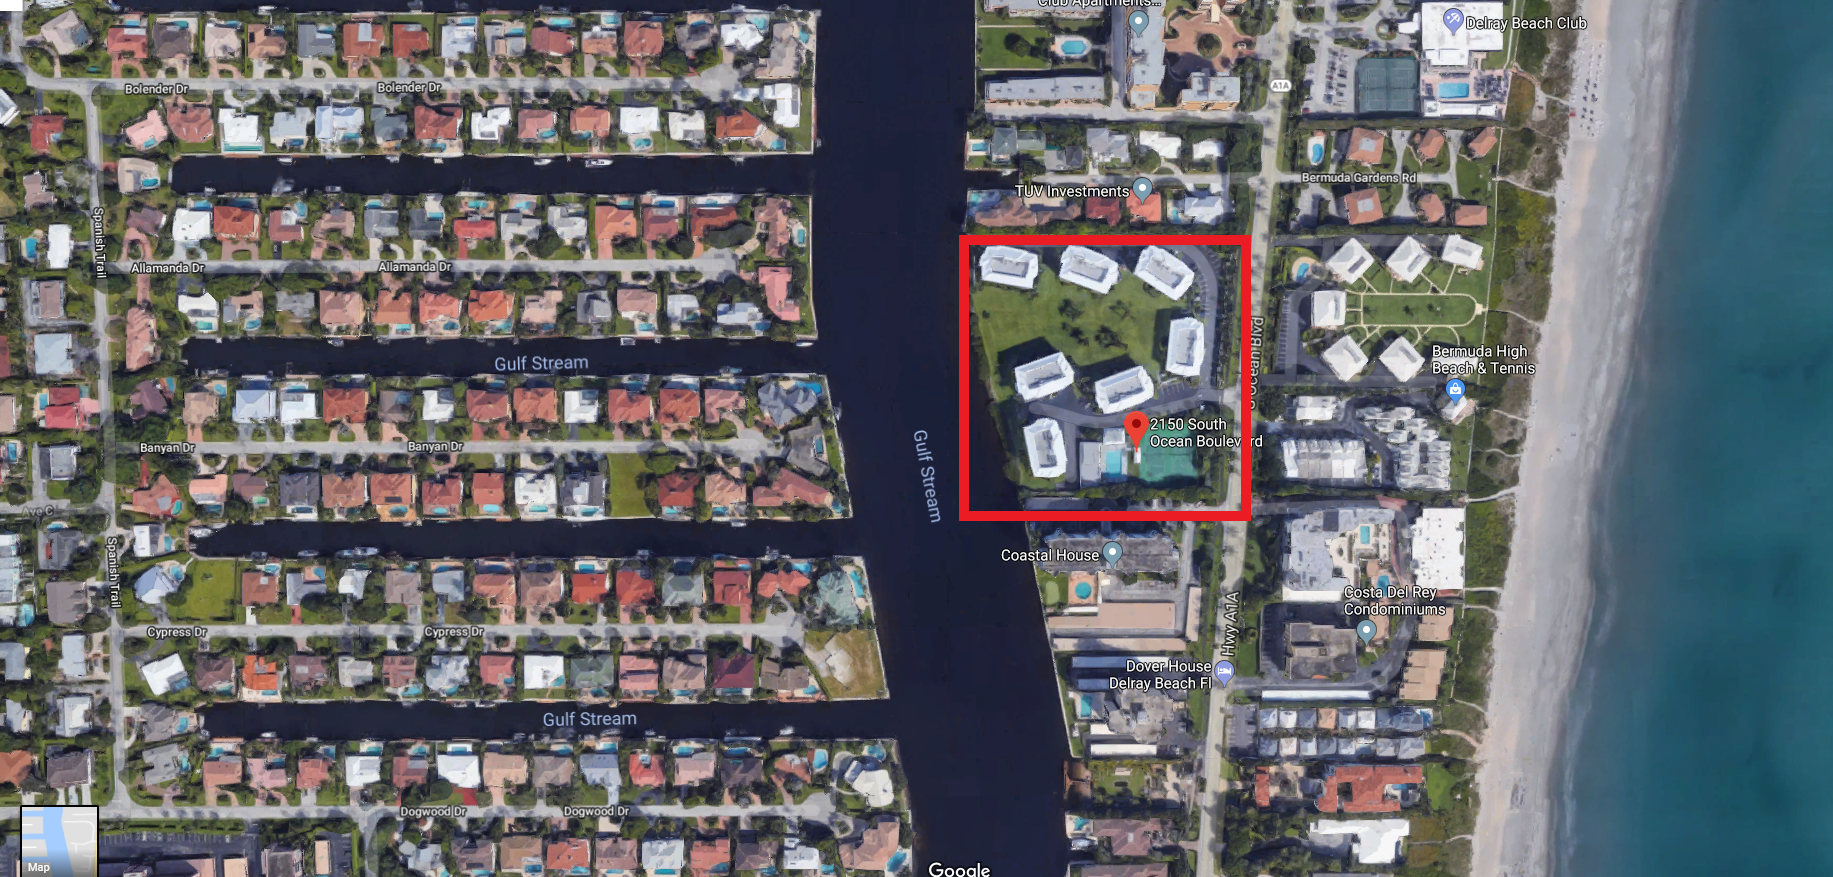 Bermuda High West 2150 S Ocean Blvd Delray Beach FL 33483 luxury condos for sale aerial